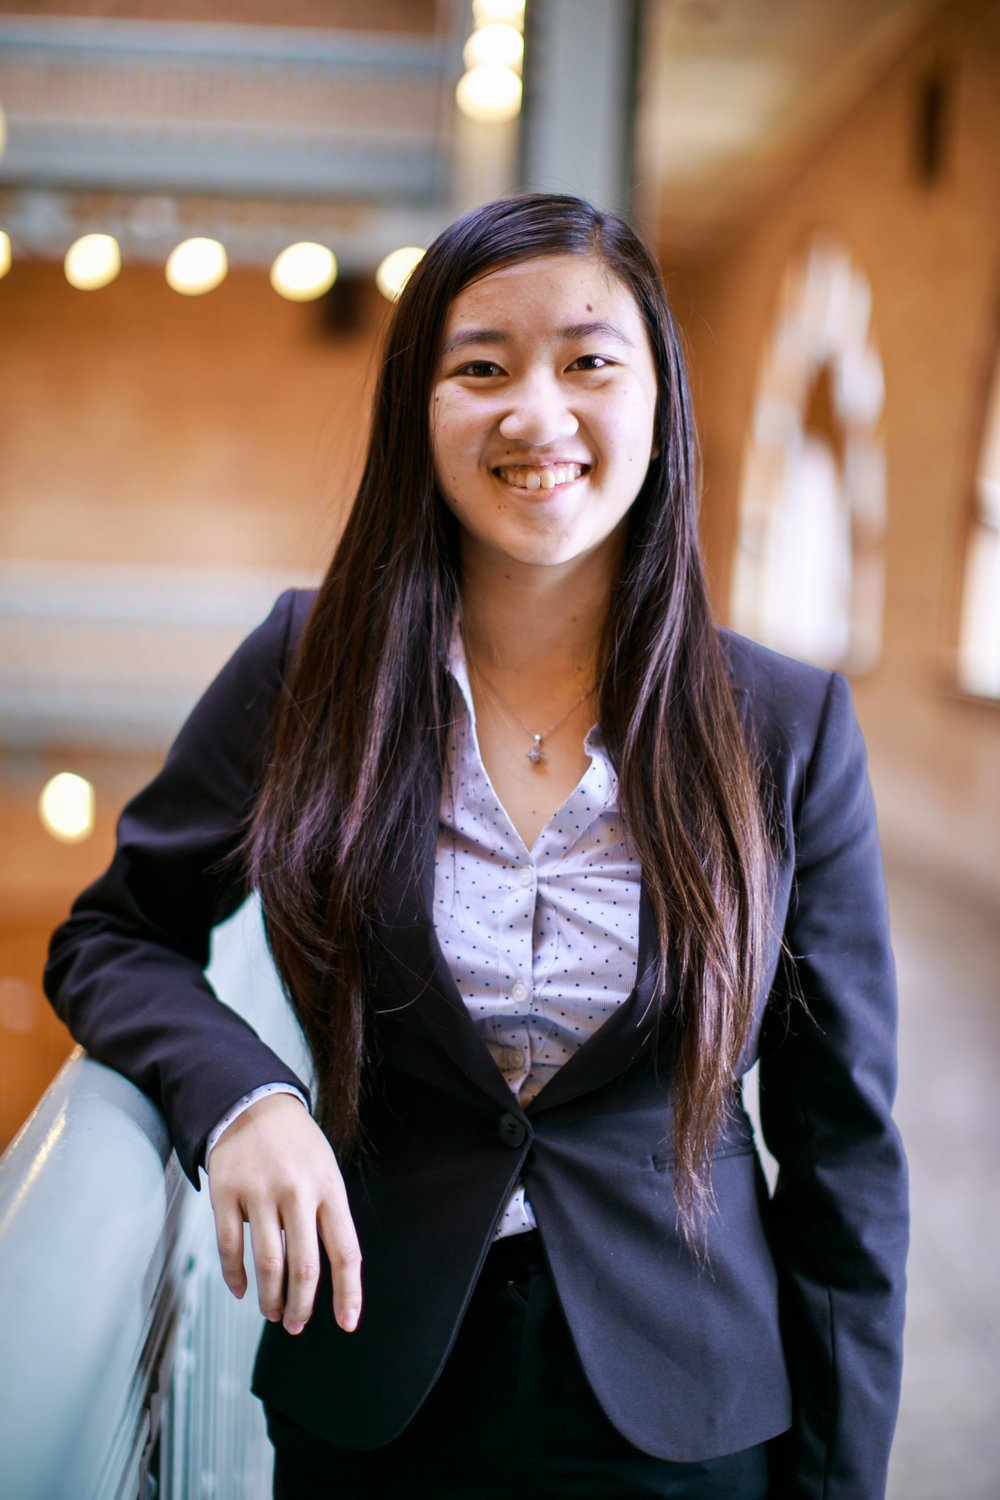 Lillian Wu | President Lillian is a junior majoring in Business Administration and Molecular Cell Biology. She is passionate about giving back to the community and being able to see the impact that she makes. She joined Microfinance at Berkeley because the club provides a wonderful opportunity for her to use her skills to work with clients one-on-one and provide them with the information that they need in order to succeed